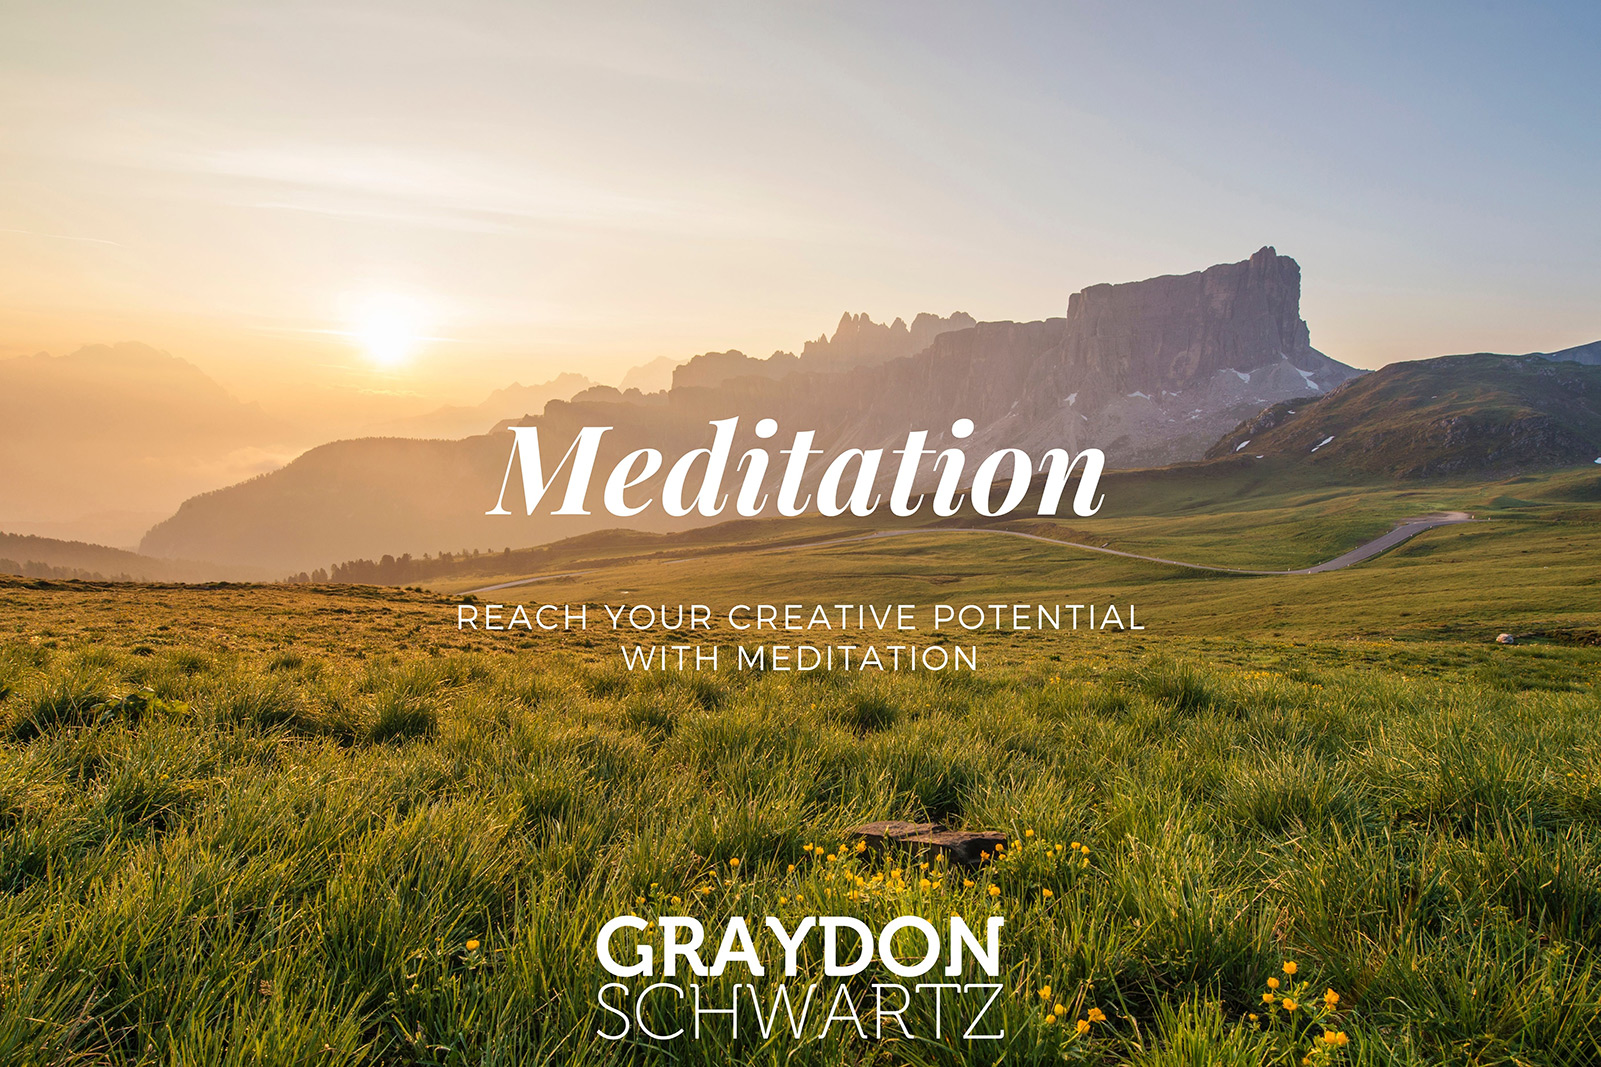 Reach Your Creative Potential With Meditation